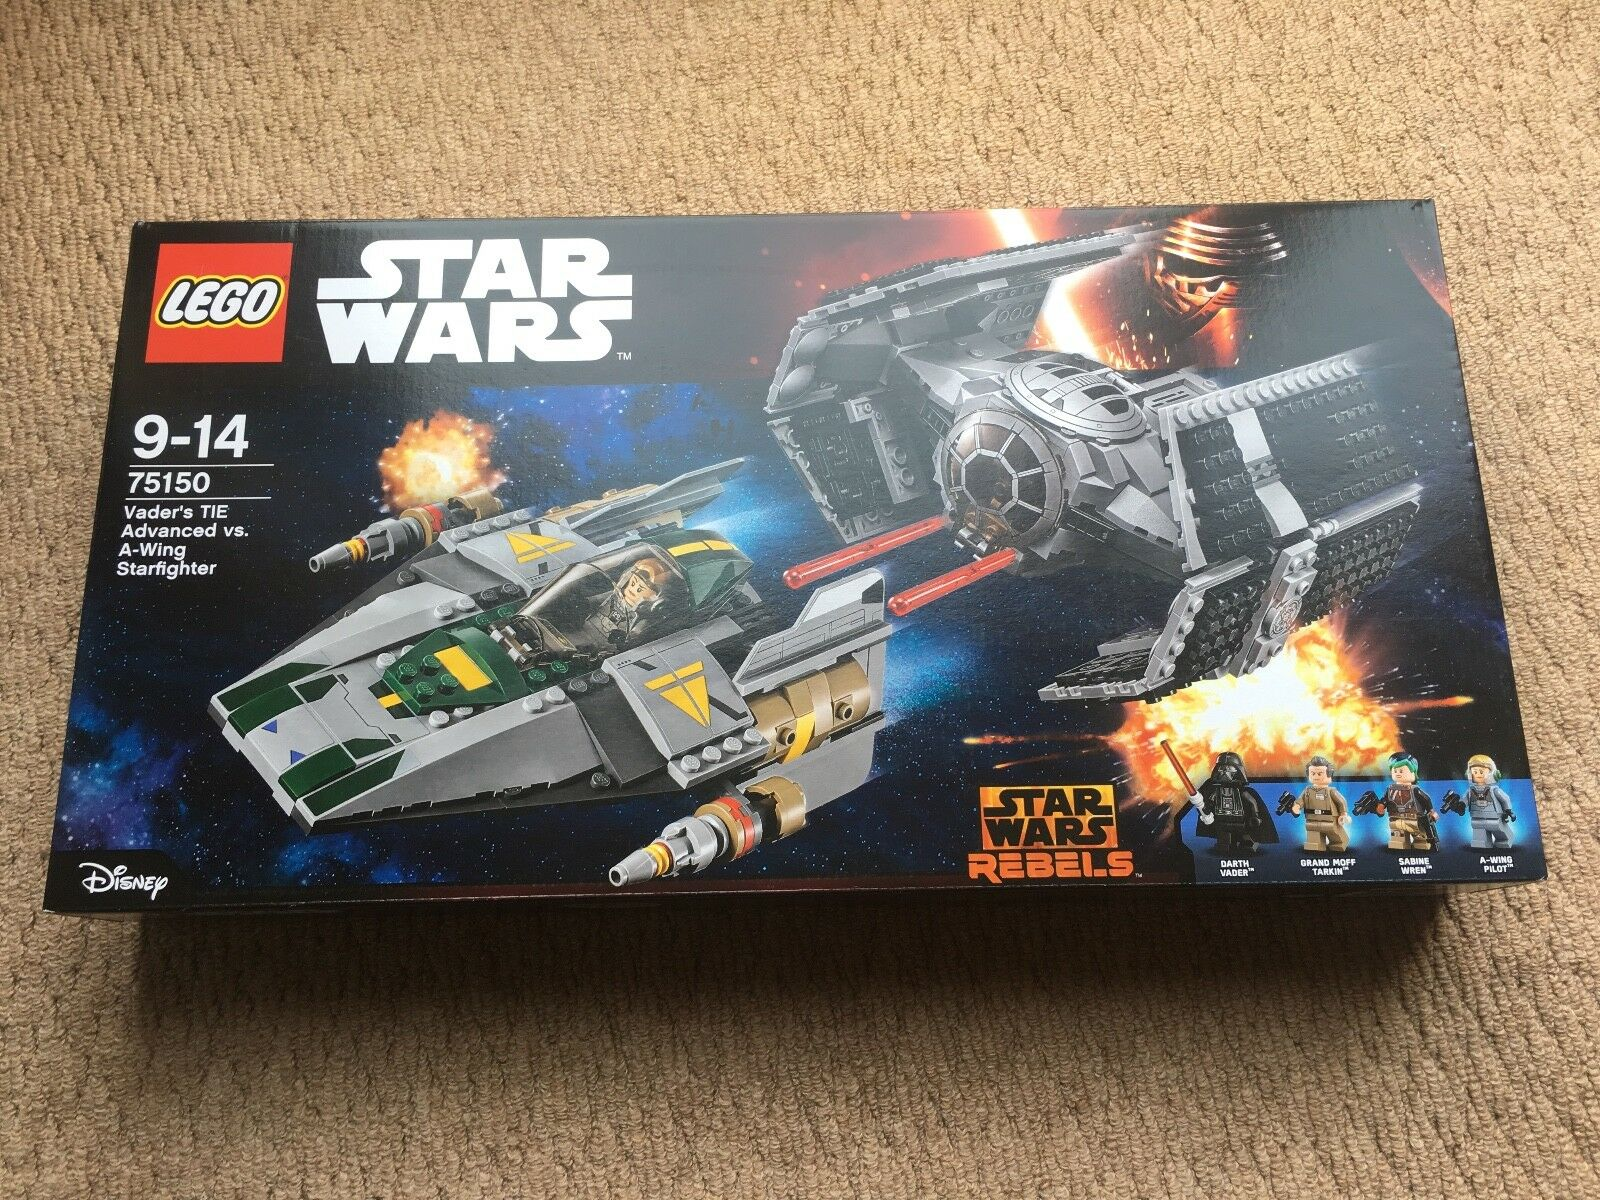 Lego Star Wars 75150 - Vader's TIE Advanced vs A-Wing Starfighter NEW - Retired